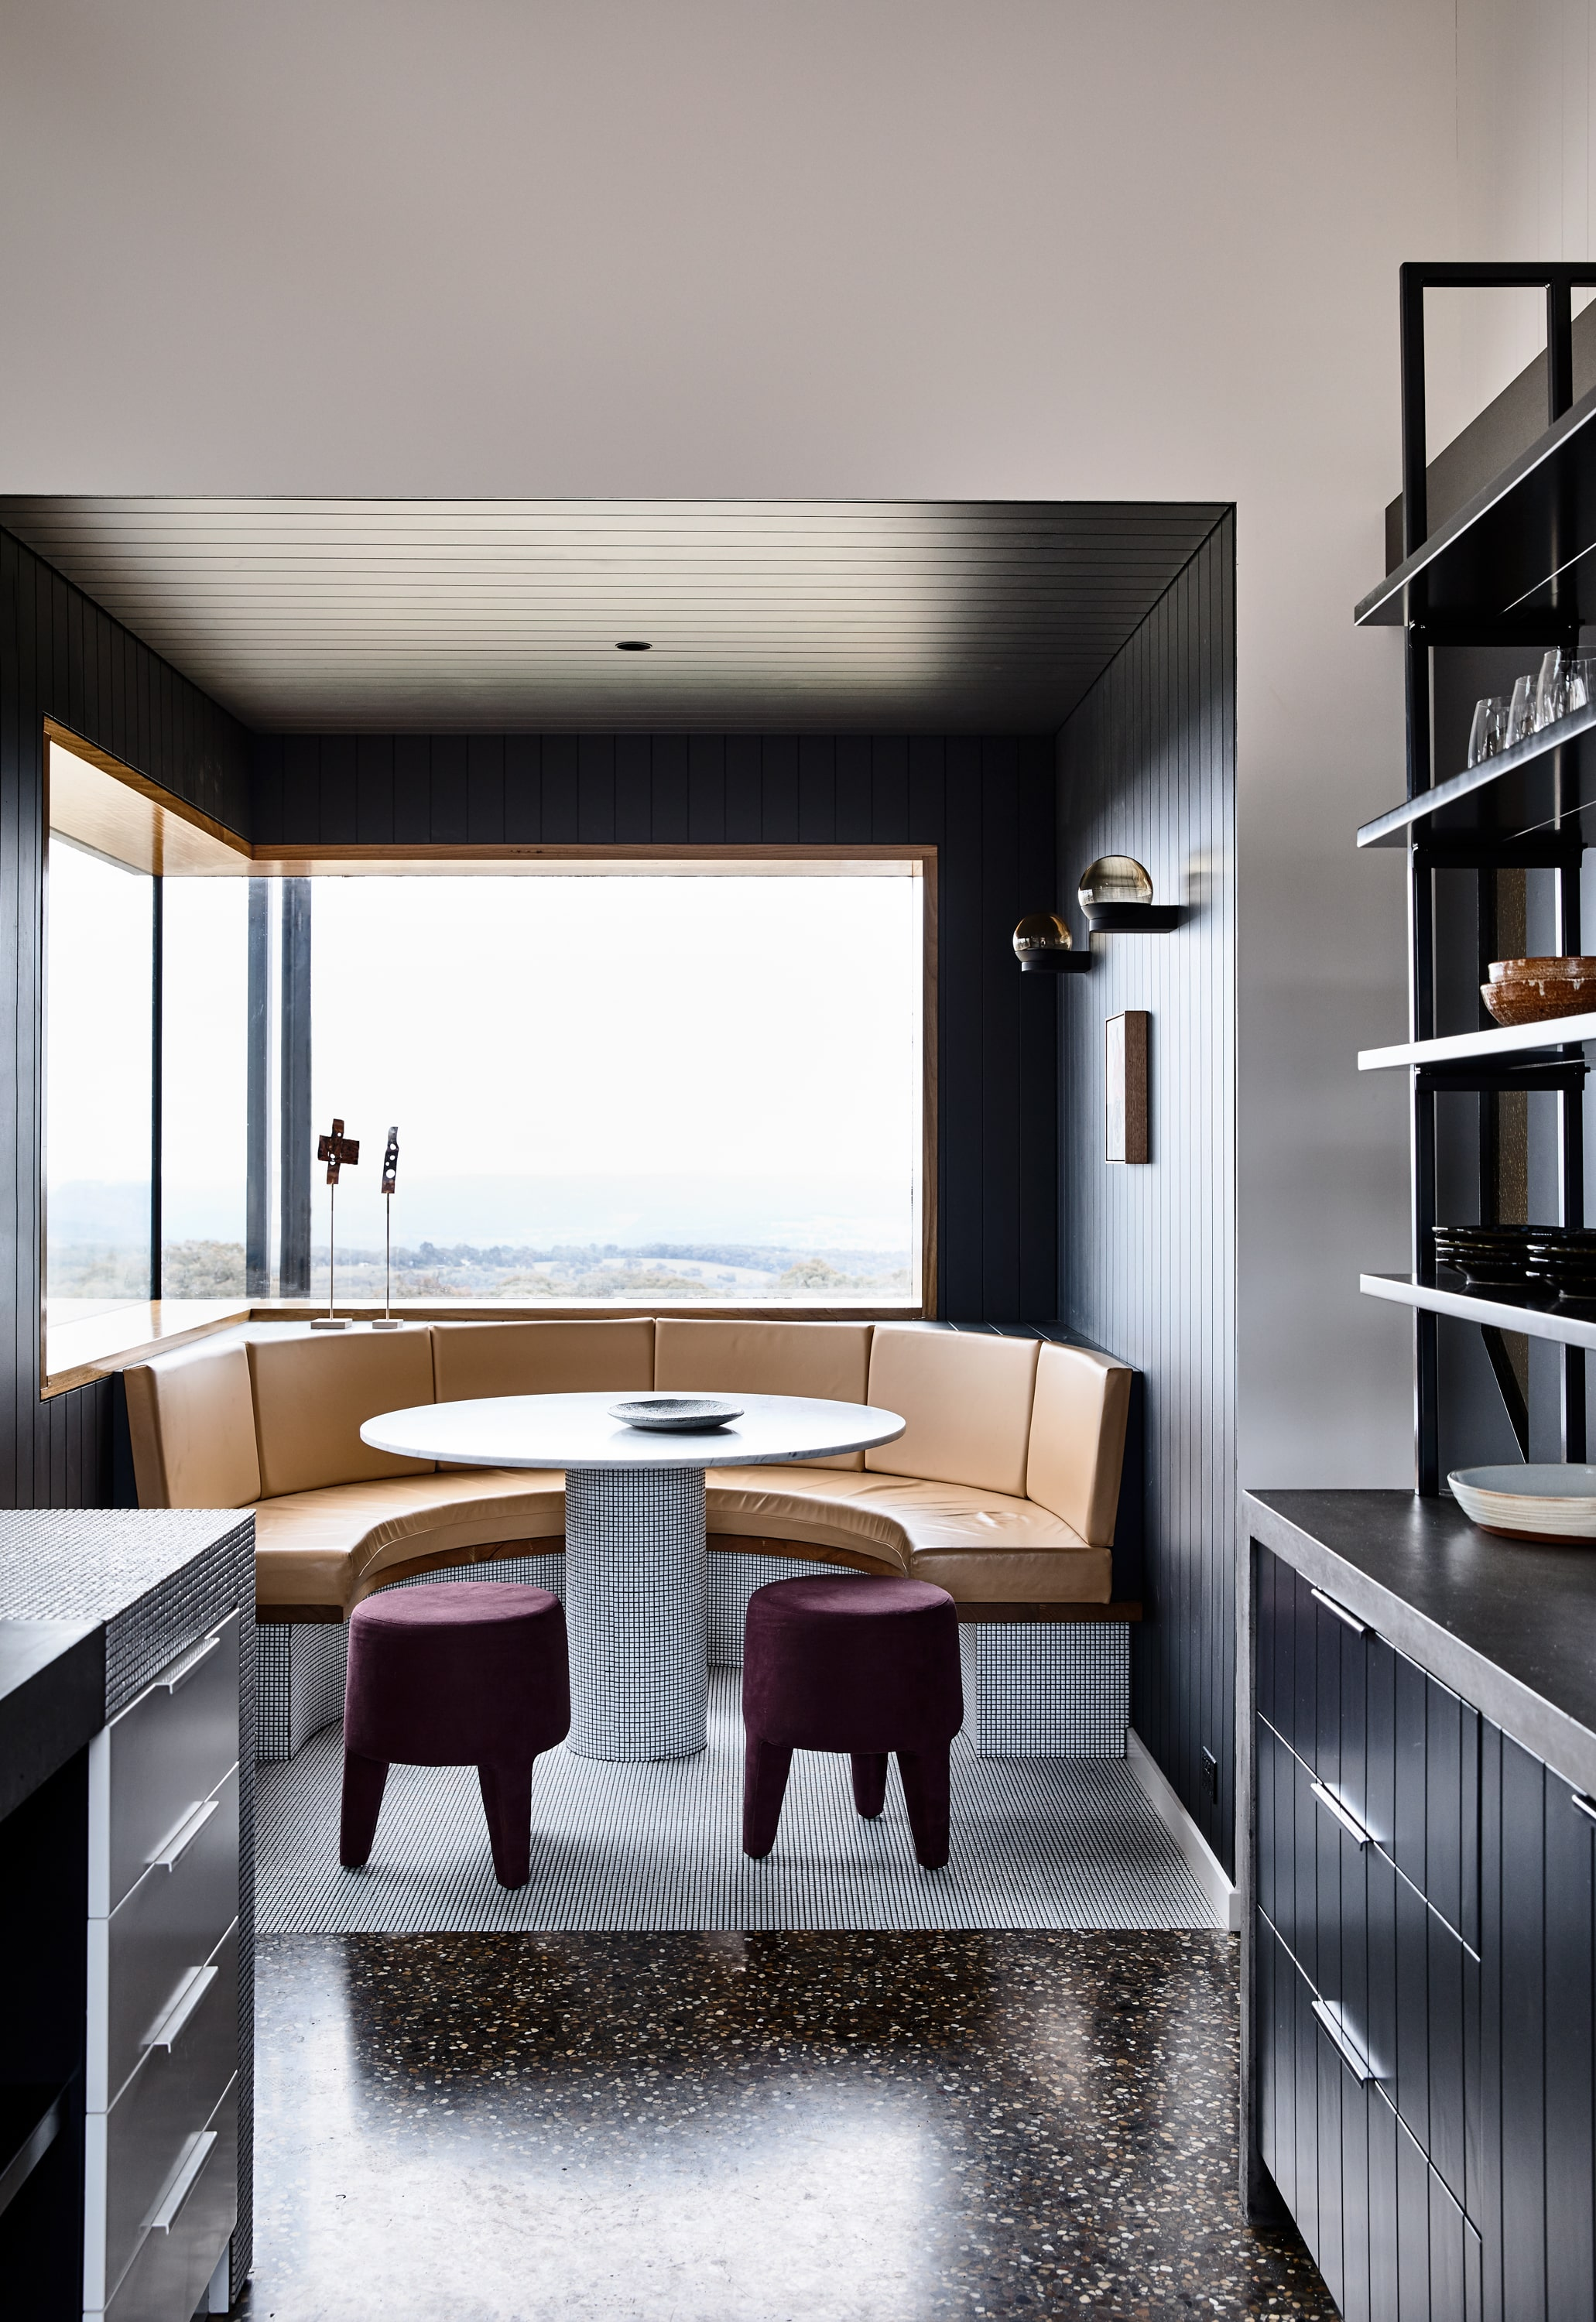 Gallery Of Beechworth Residence By Doherty Design Studio Local Residential Architecture Beechworth, Vic Image 4